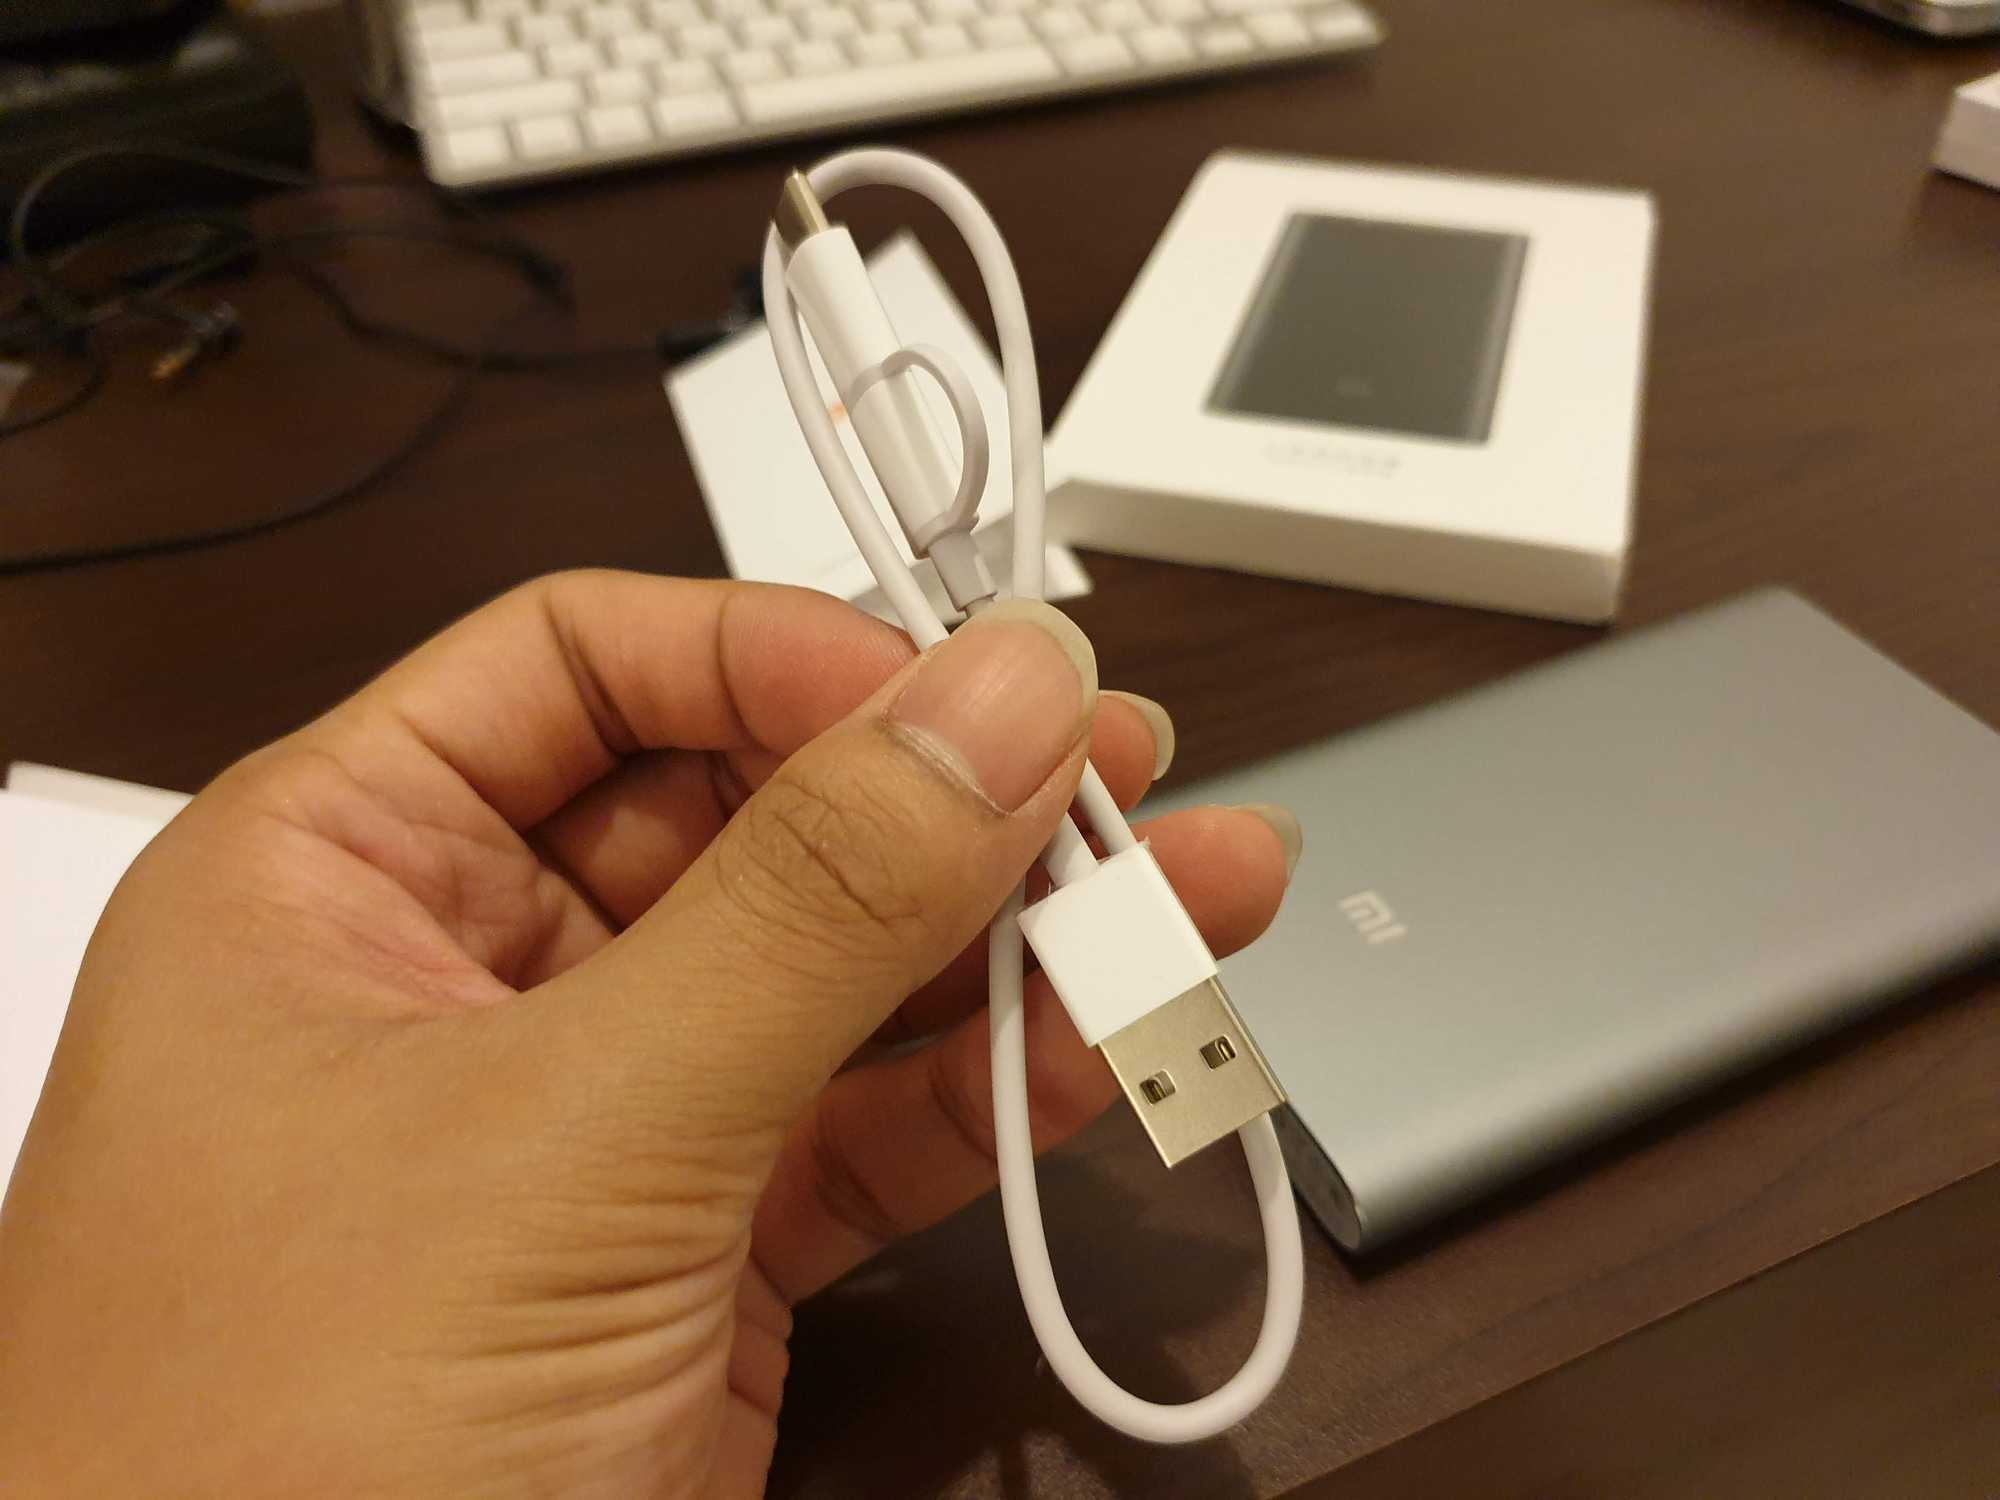 Mi Power Bank Pro 10000 Cable